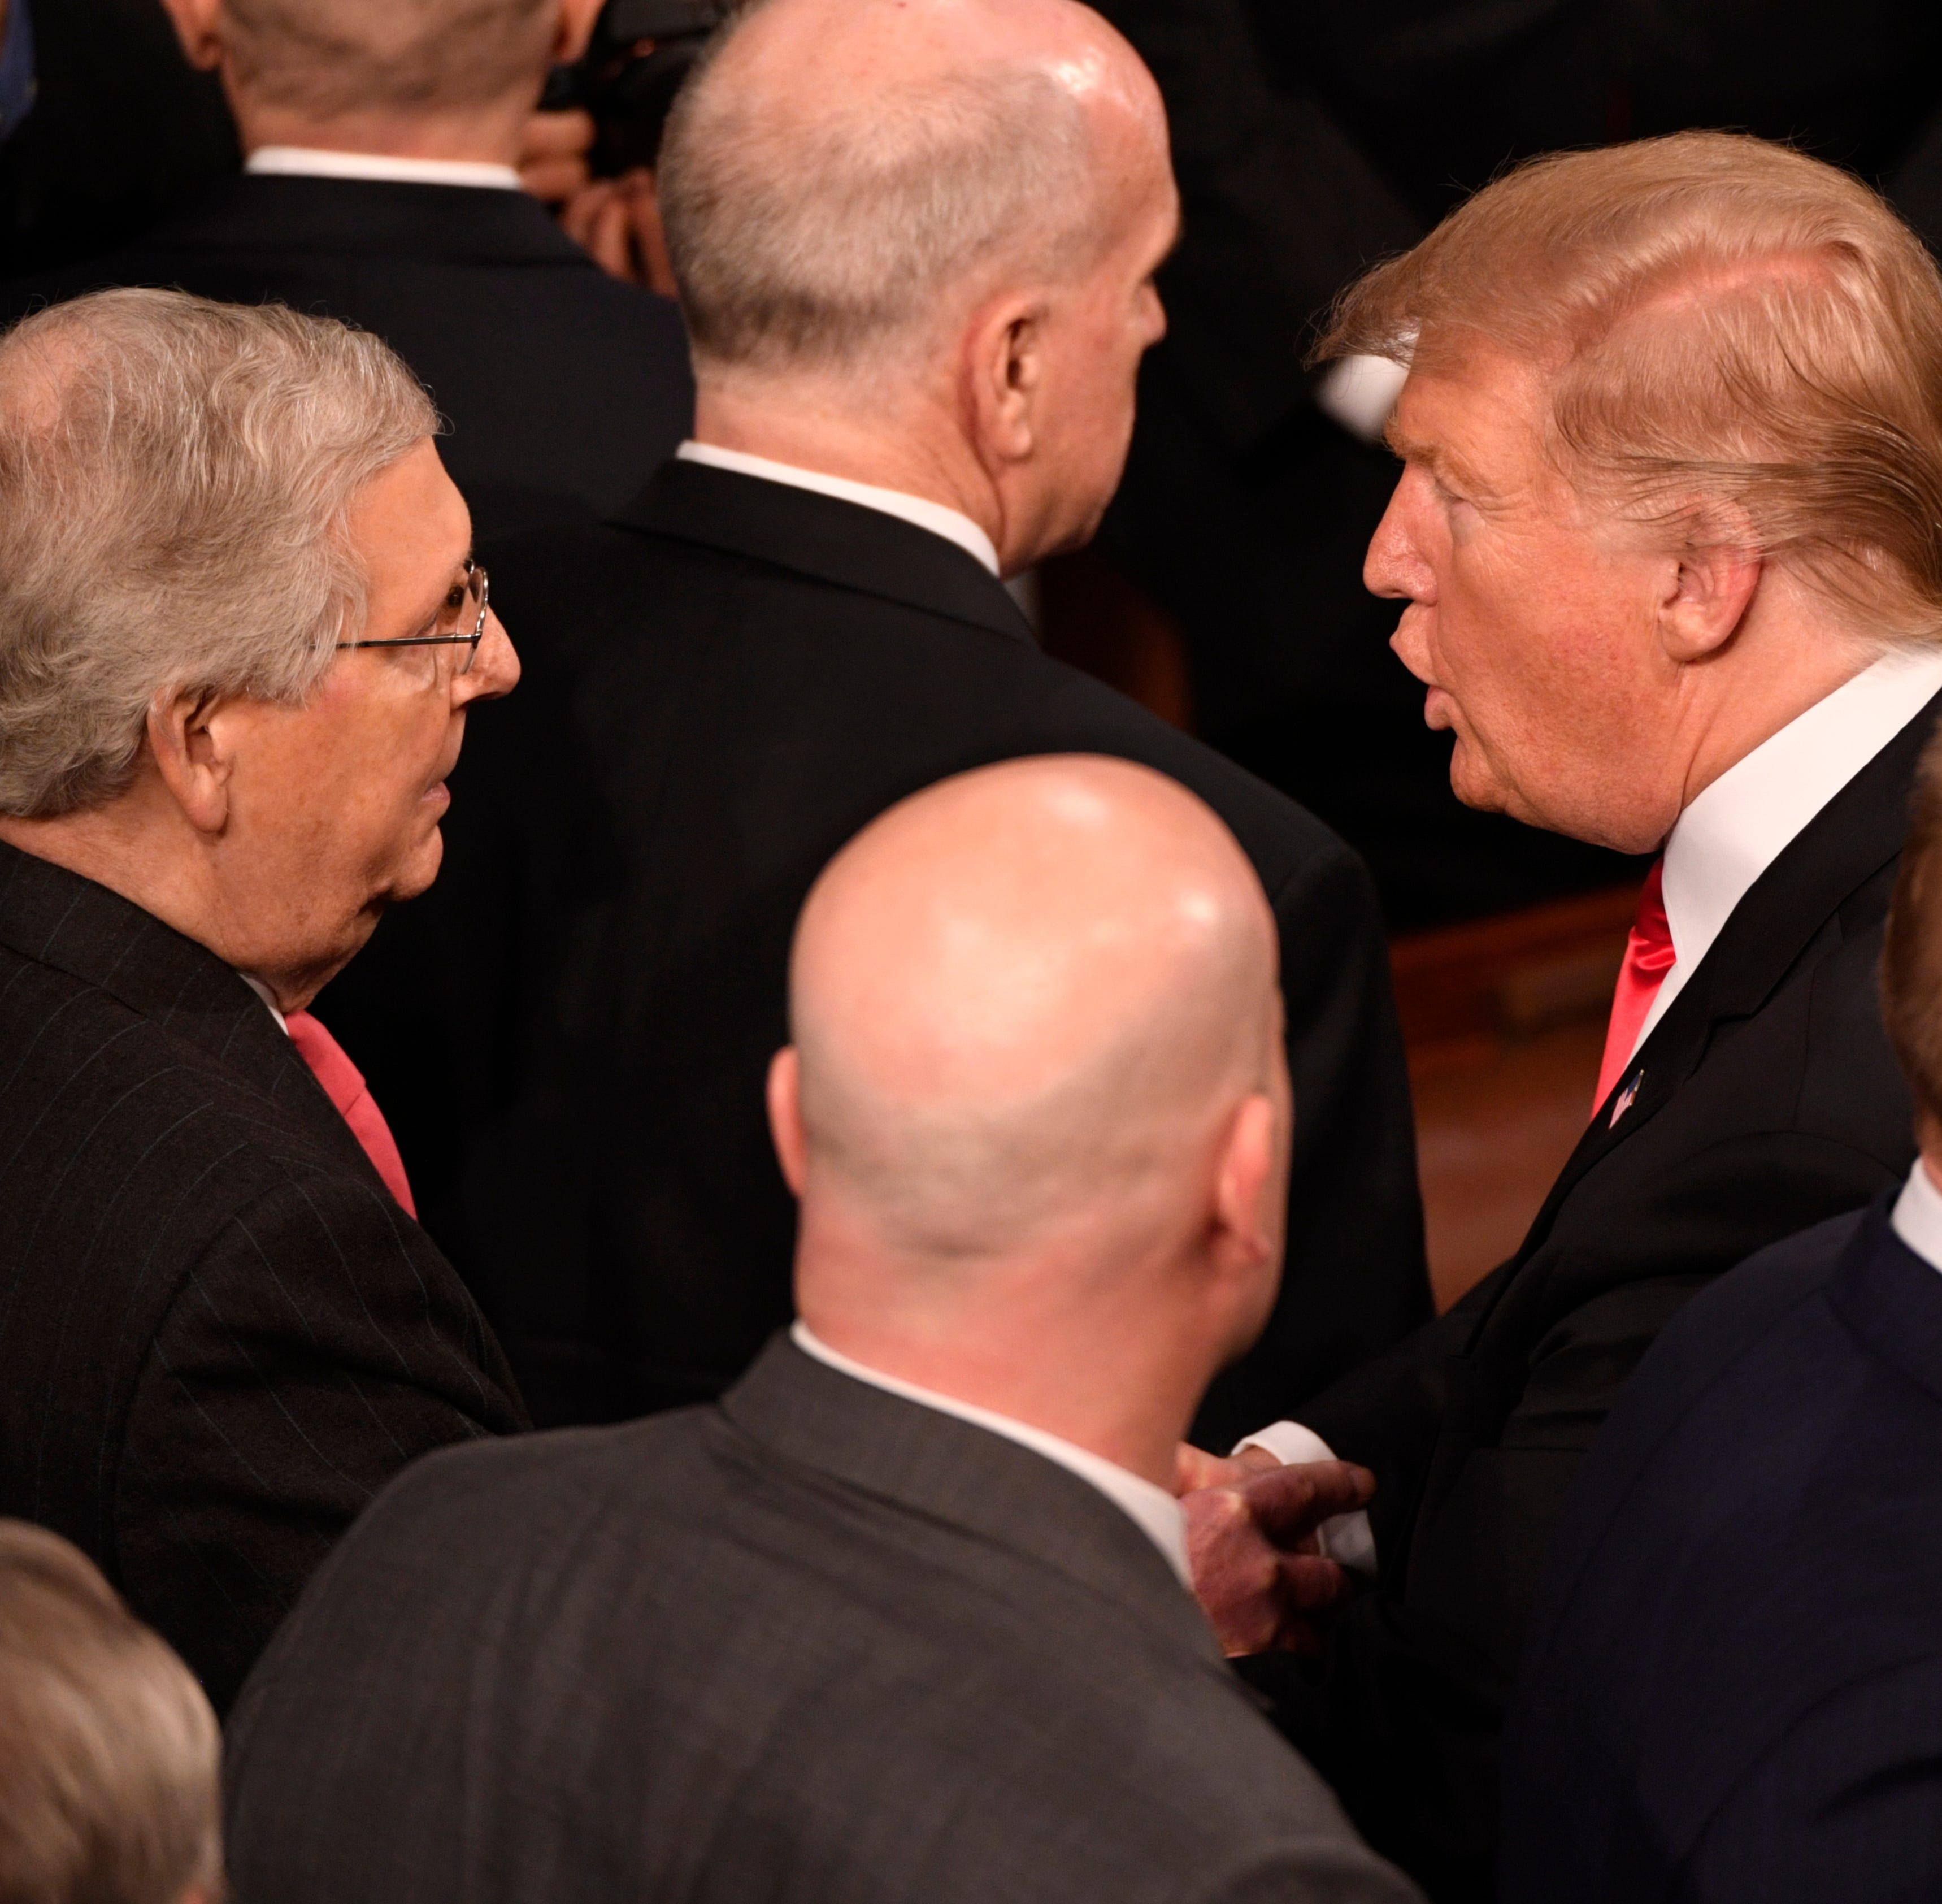 President Donald Trump greets Sen. Mitch McConnell, R-Ky., after he delivered the State of the Union address last week.